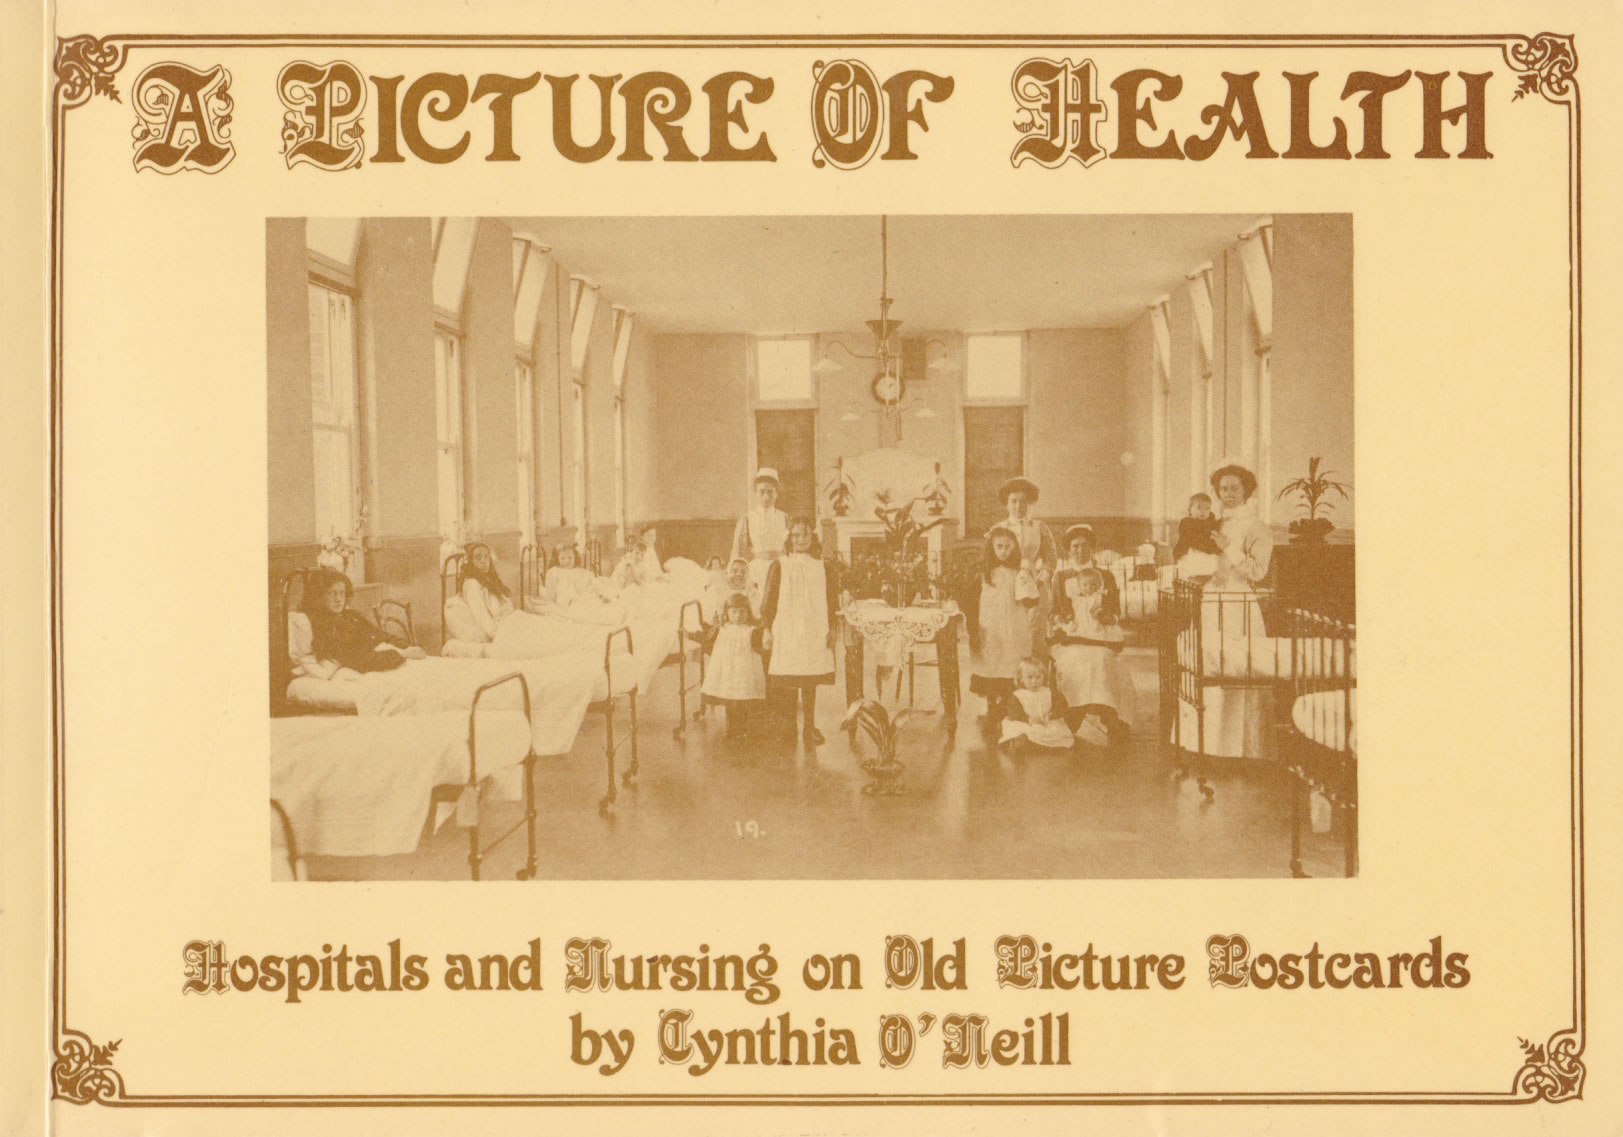 The cover of A Picture of Health by Cynthia O'Neill